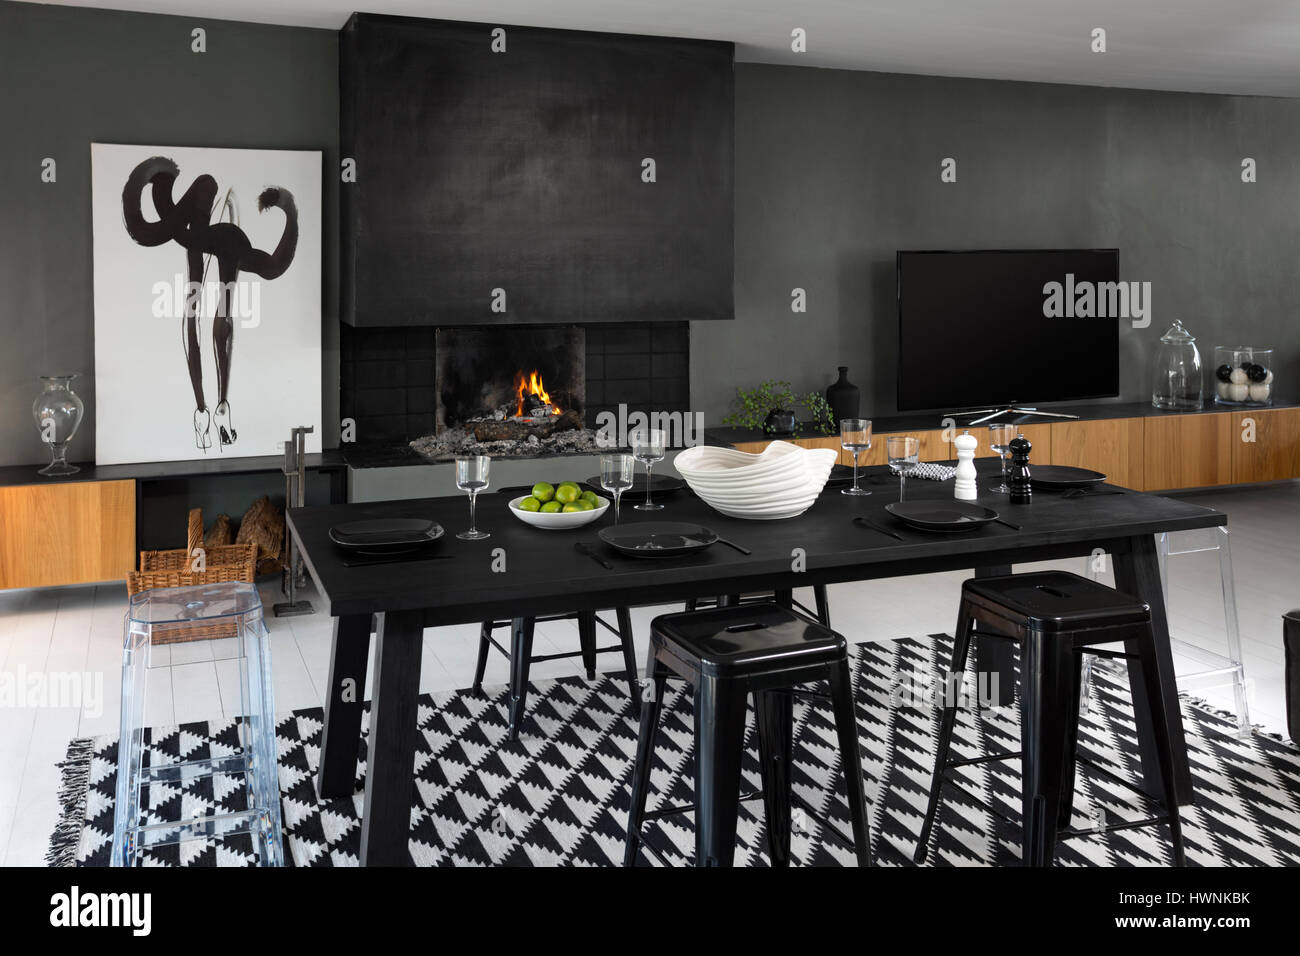 a laid out contemporary table made out of a charred wood stock